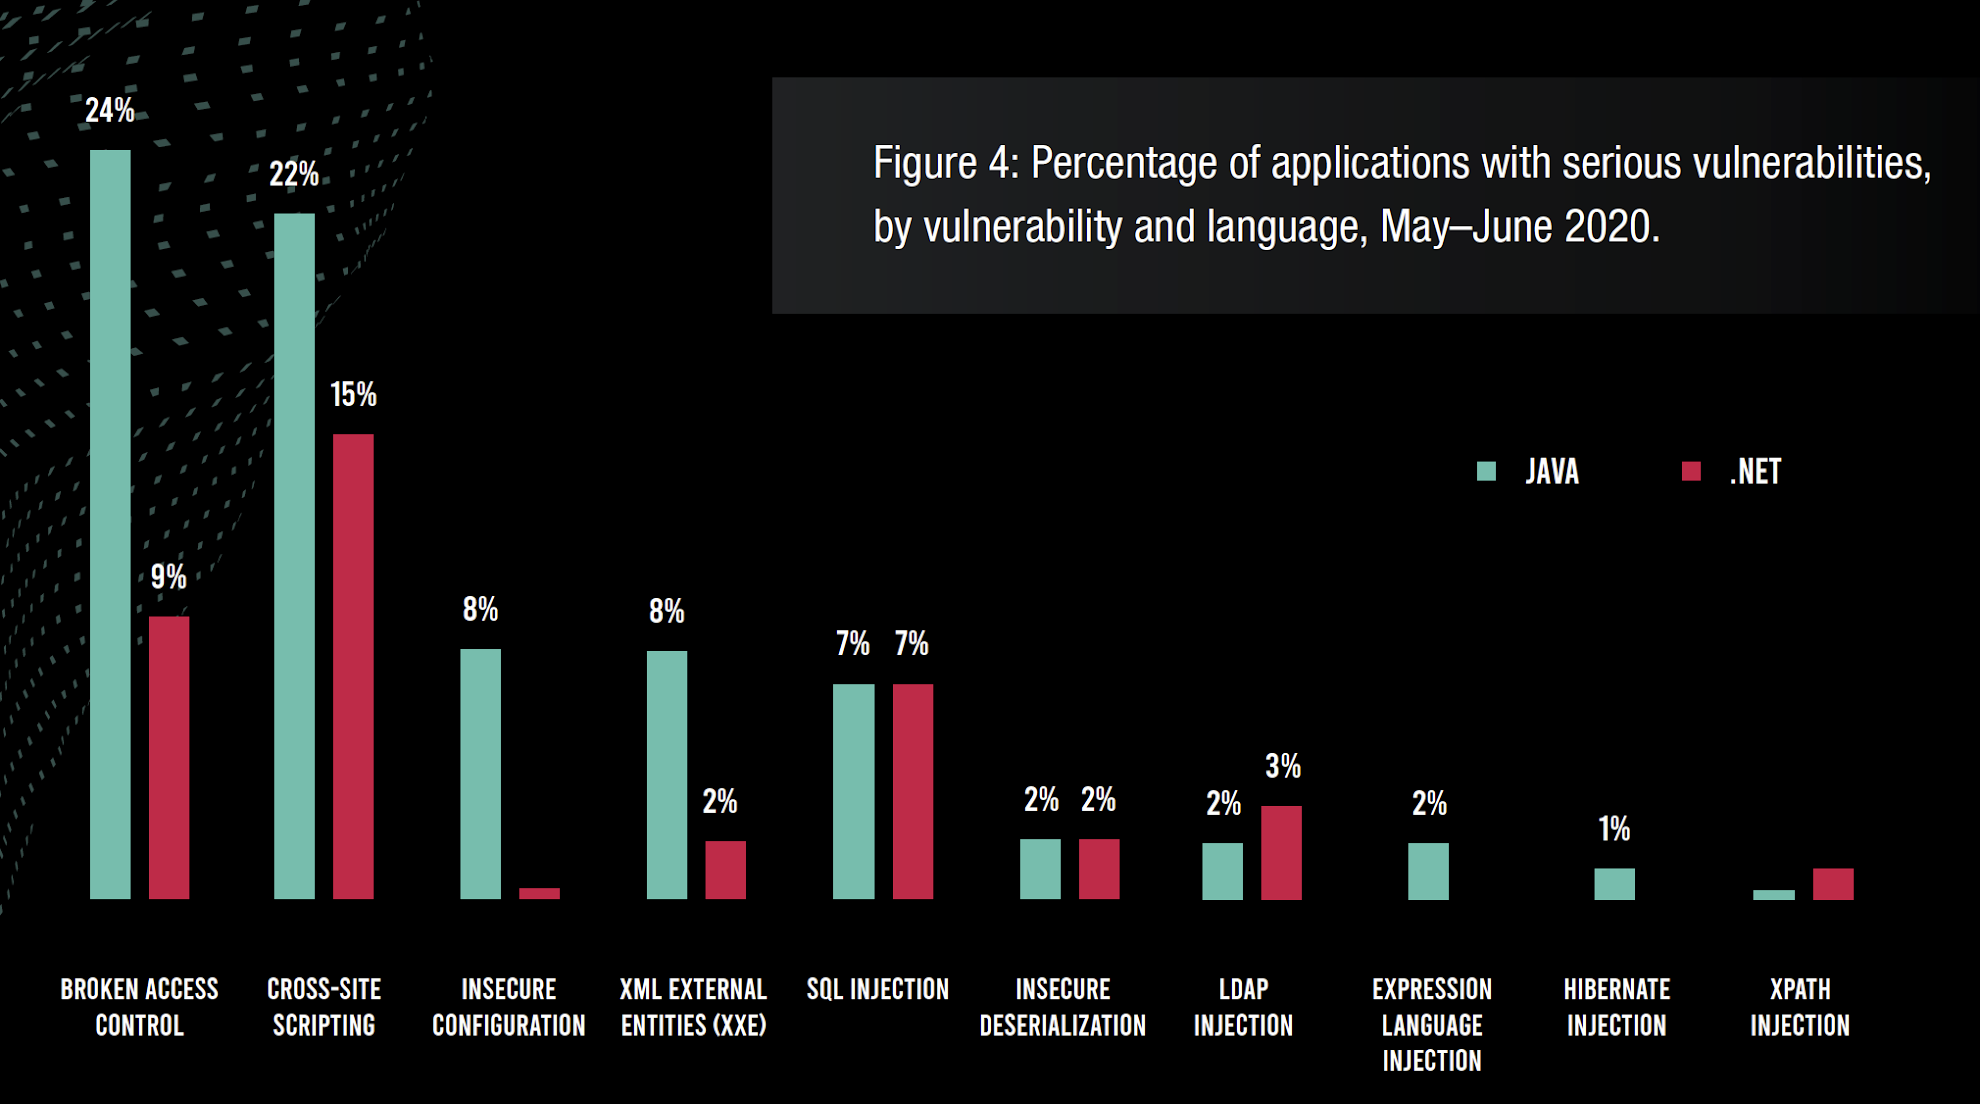 Figure 4: Percentage of applications with serious vulnerabilities, by vulnerability and language, May–June 2020.